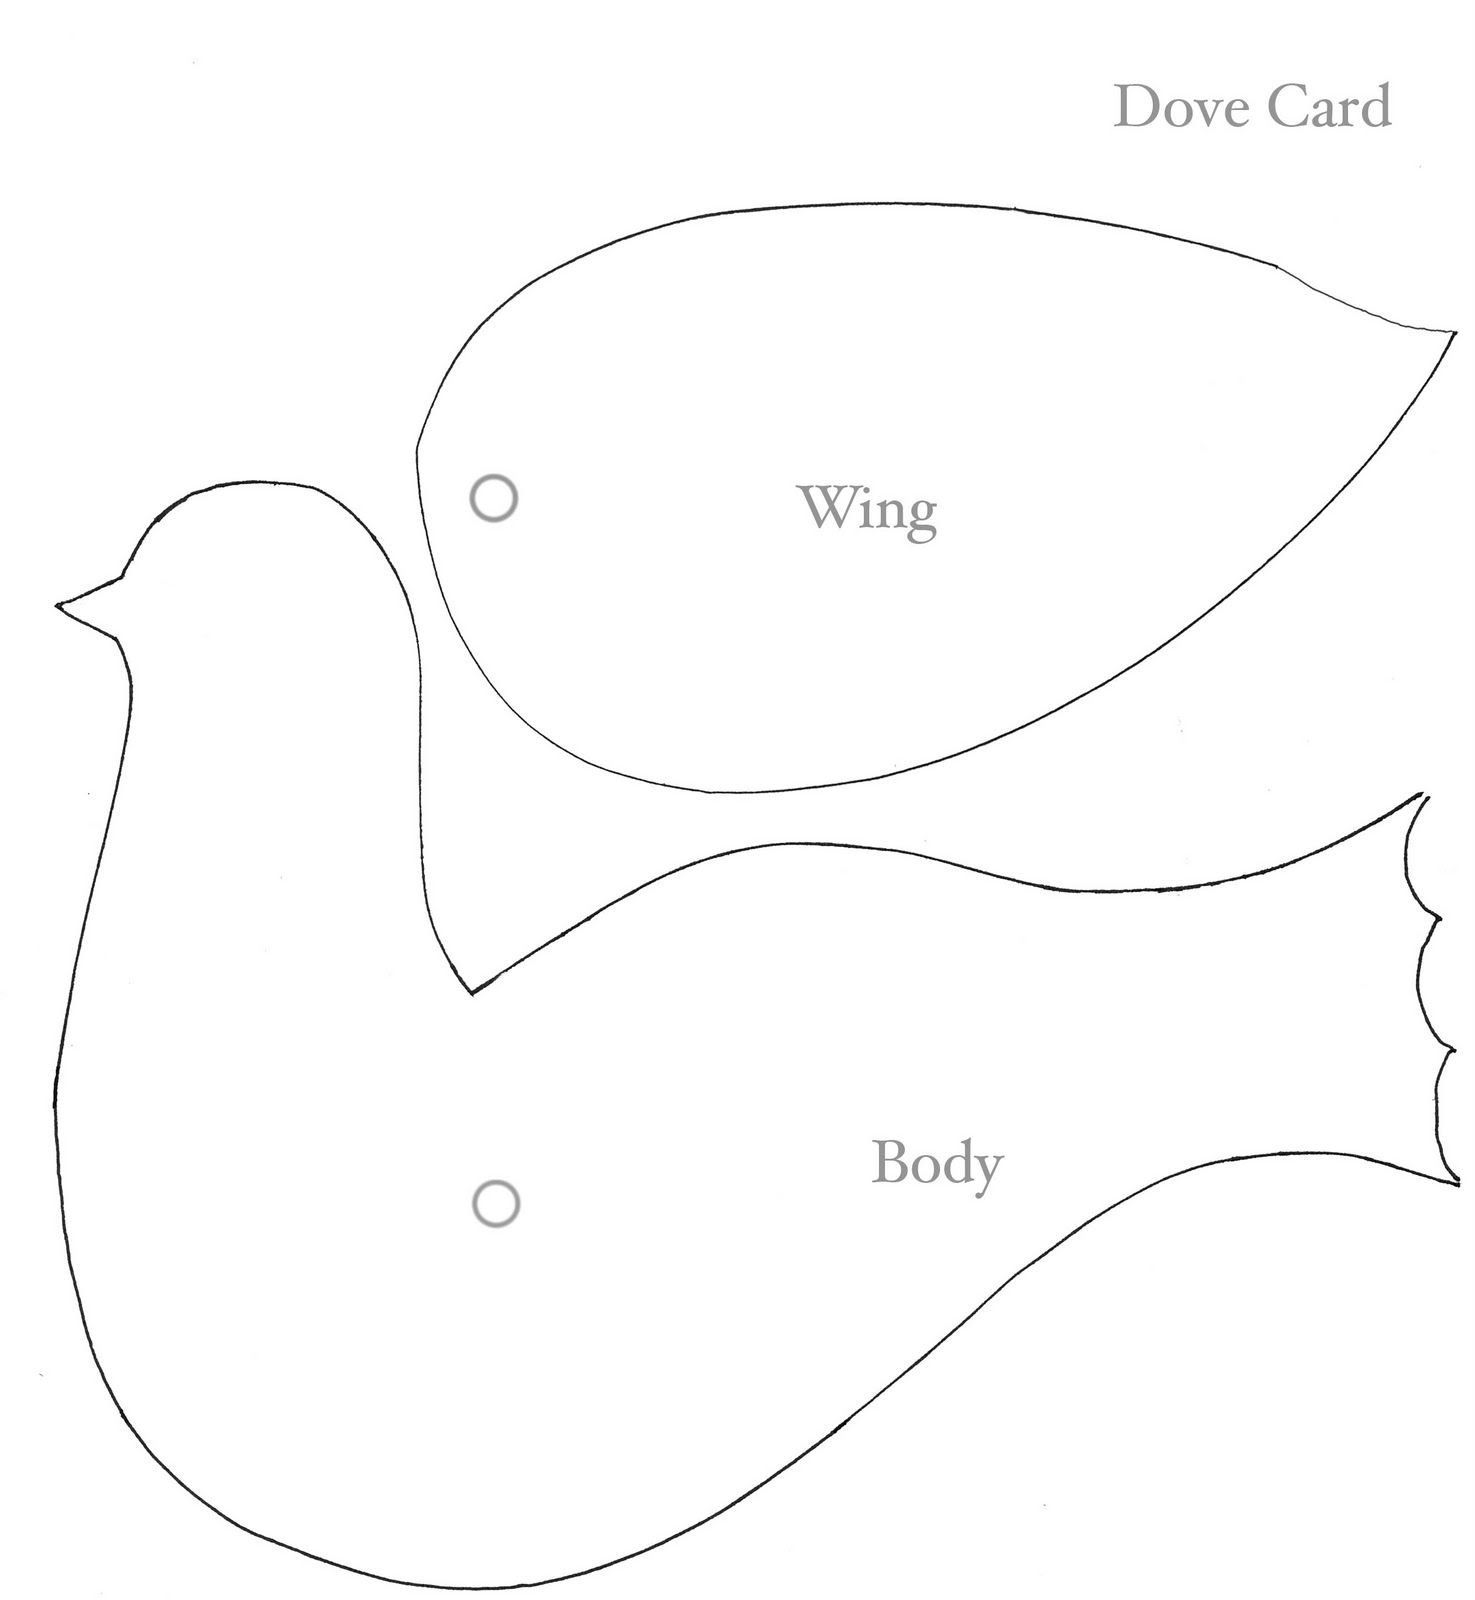 White dove christmas ornaments - To Doves Face Attach Wing To Body With Paper Fastener